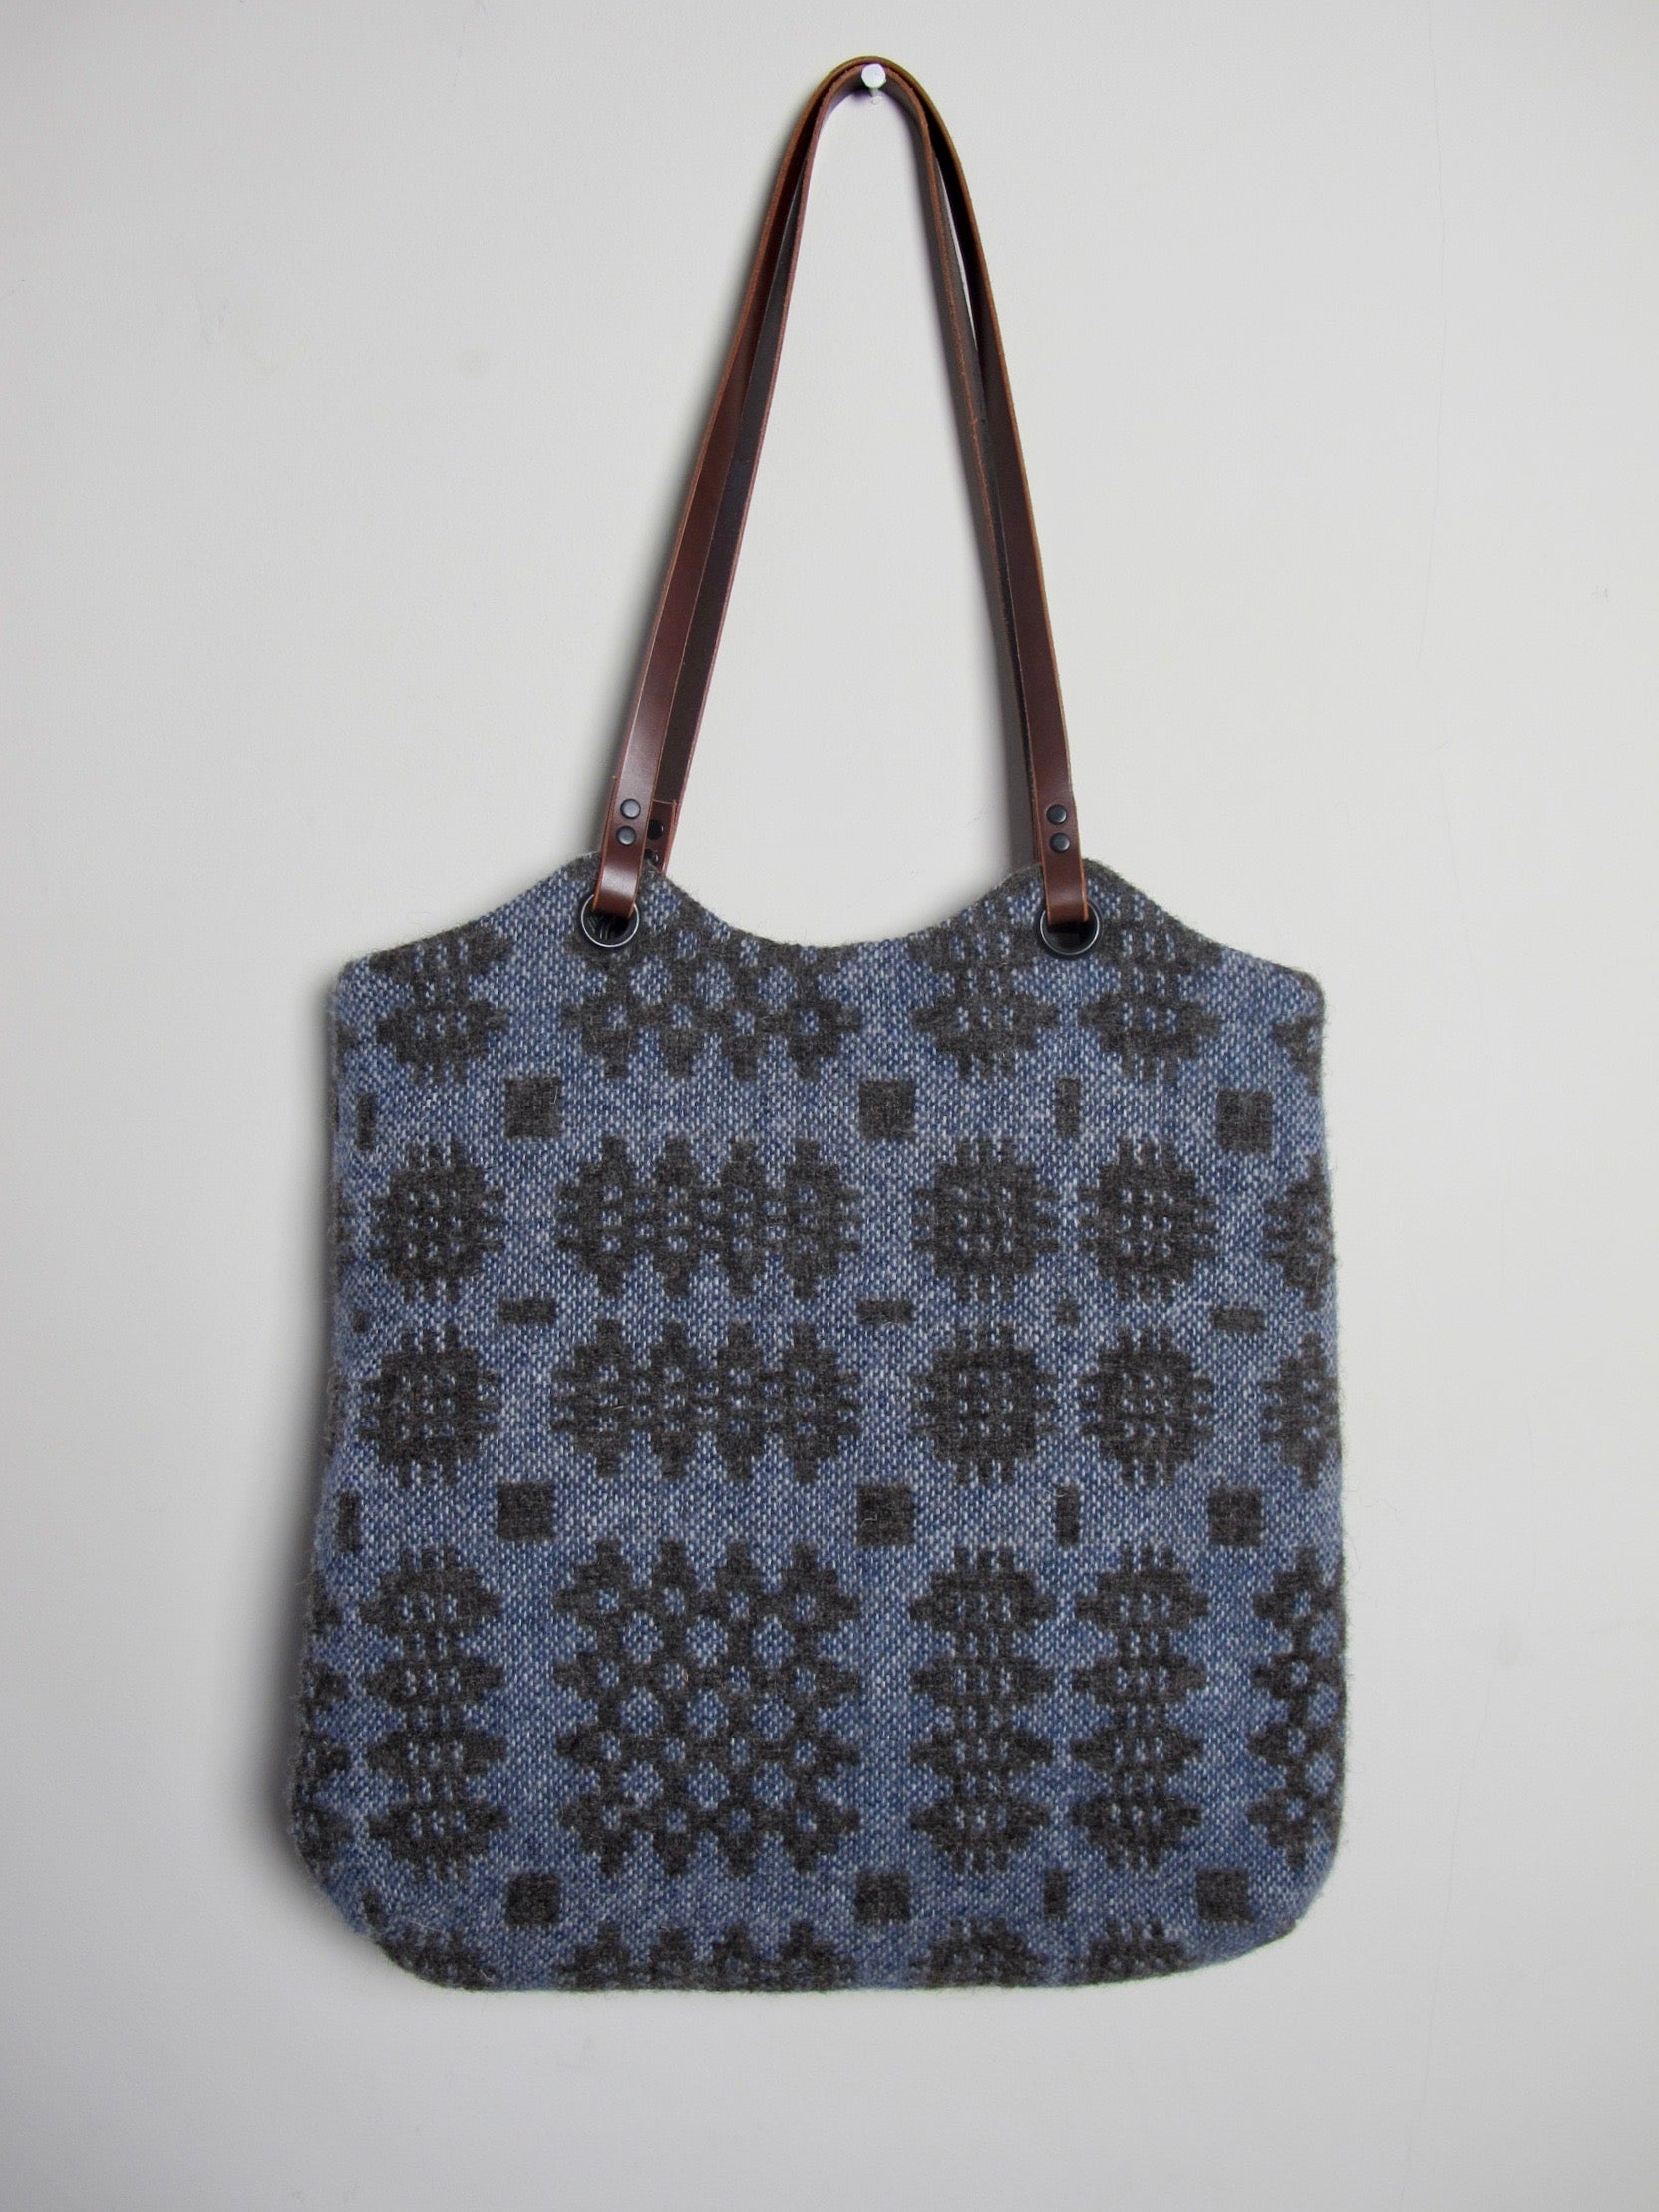 Tapestry Tote - Lottie Blue II